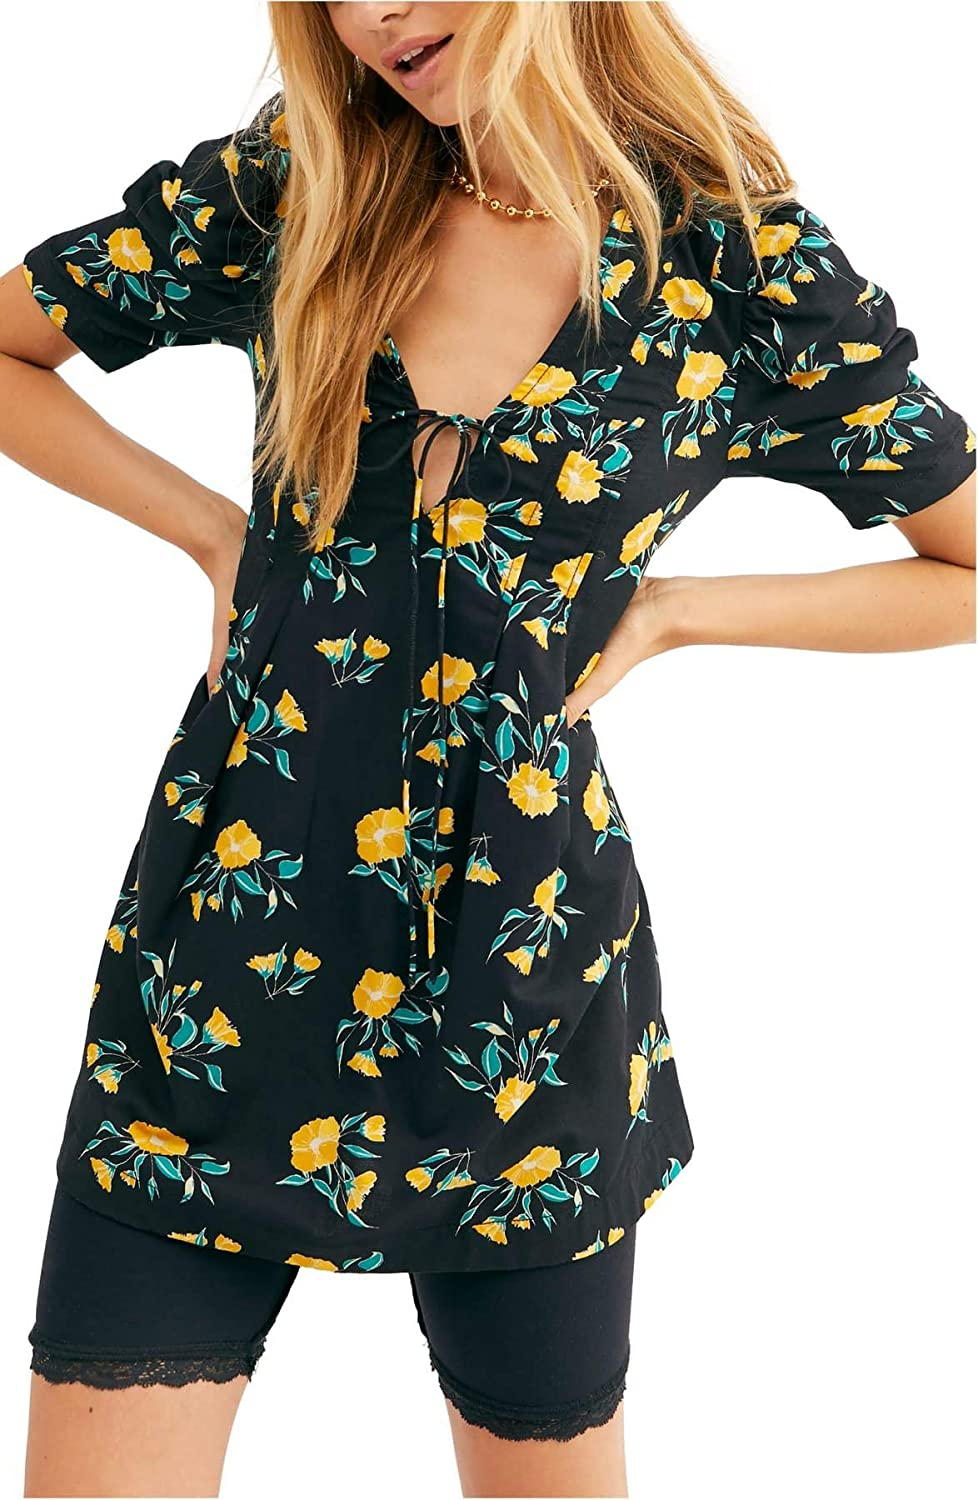 Free People Women's Adelle Floral Tunic